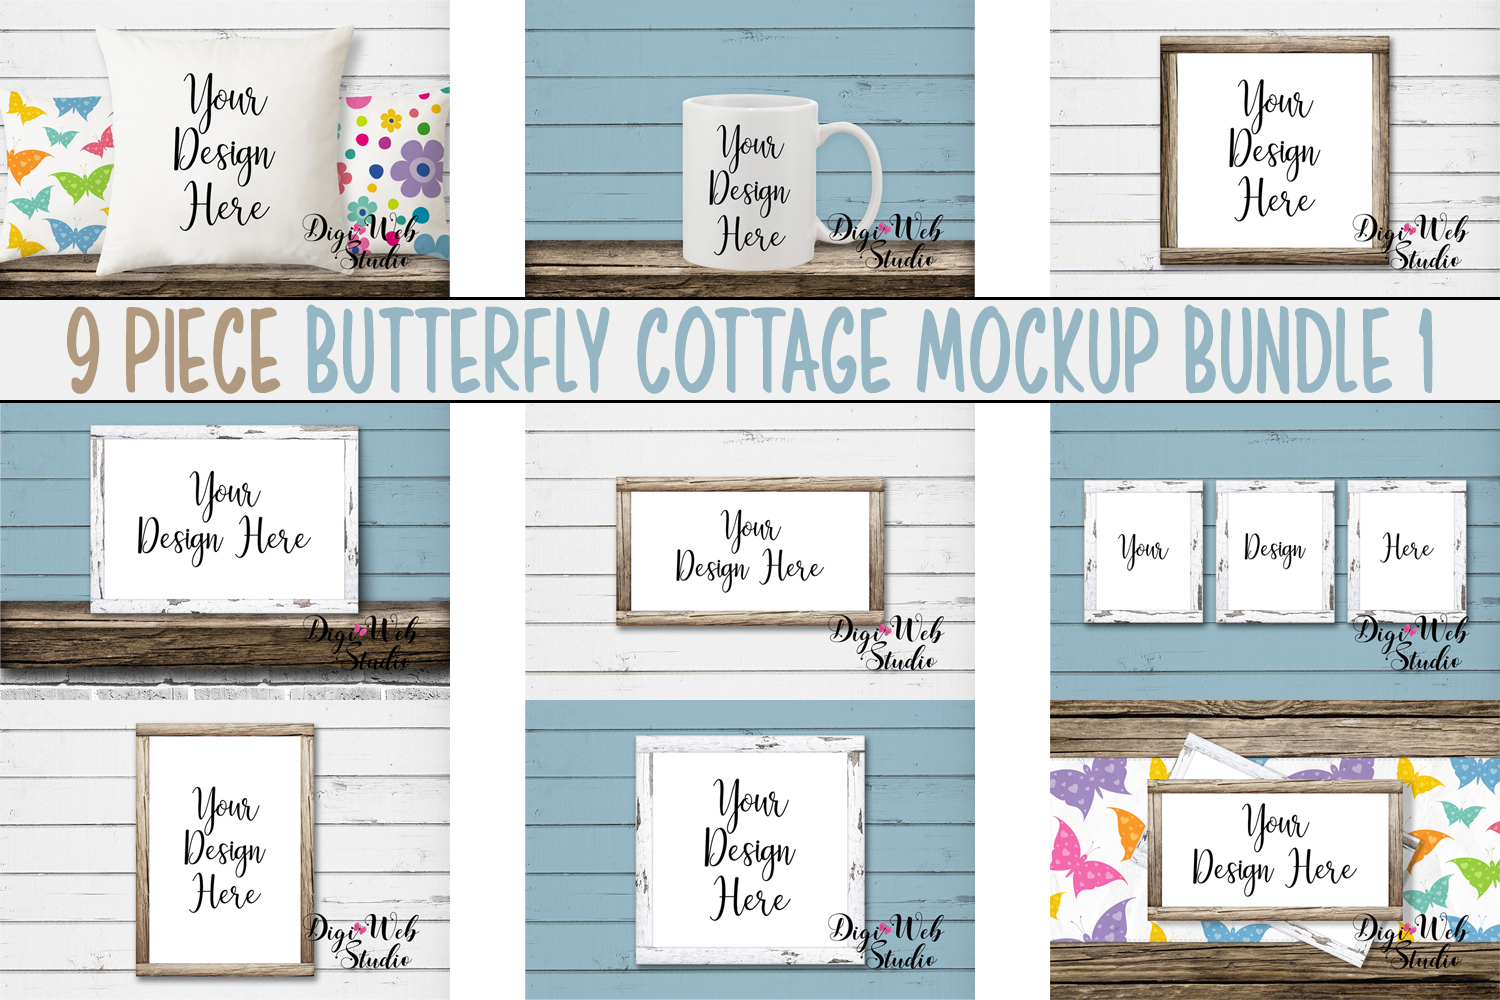 Mockup Bundle - Butterfly Cottage Wood Signs, Pillow & Mug example image 1